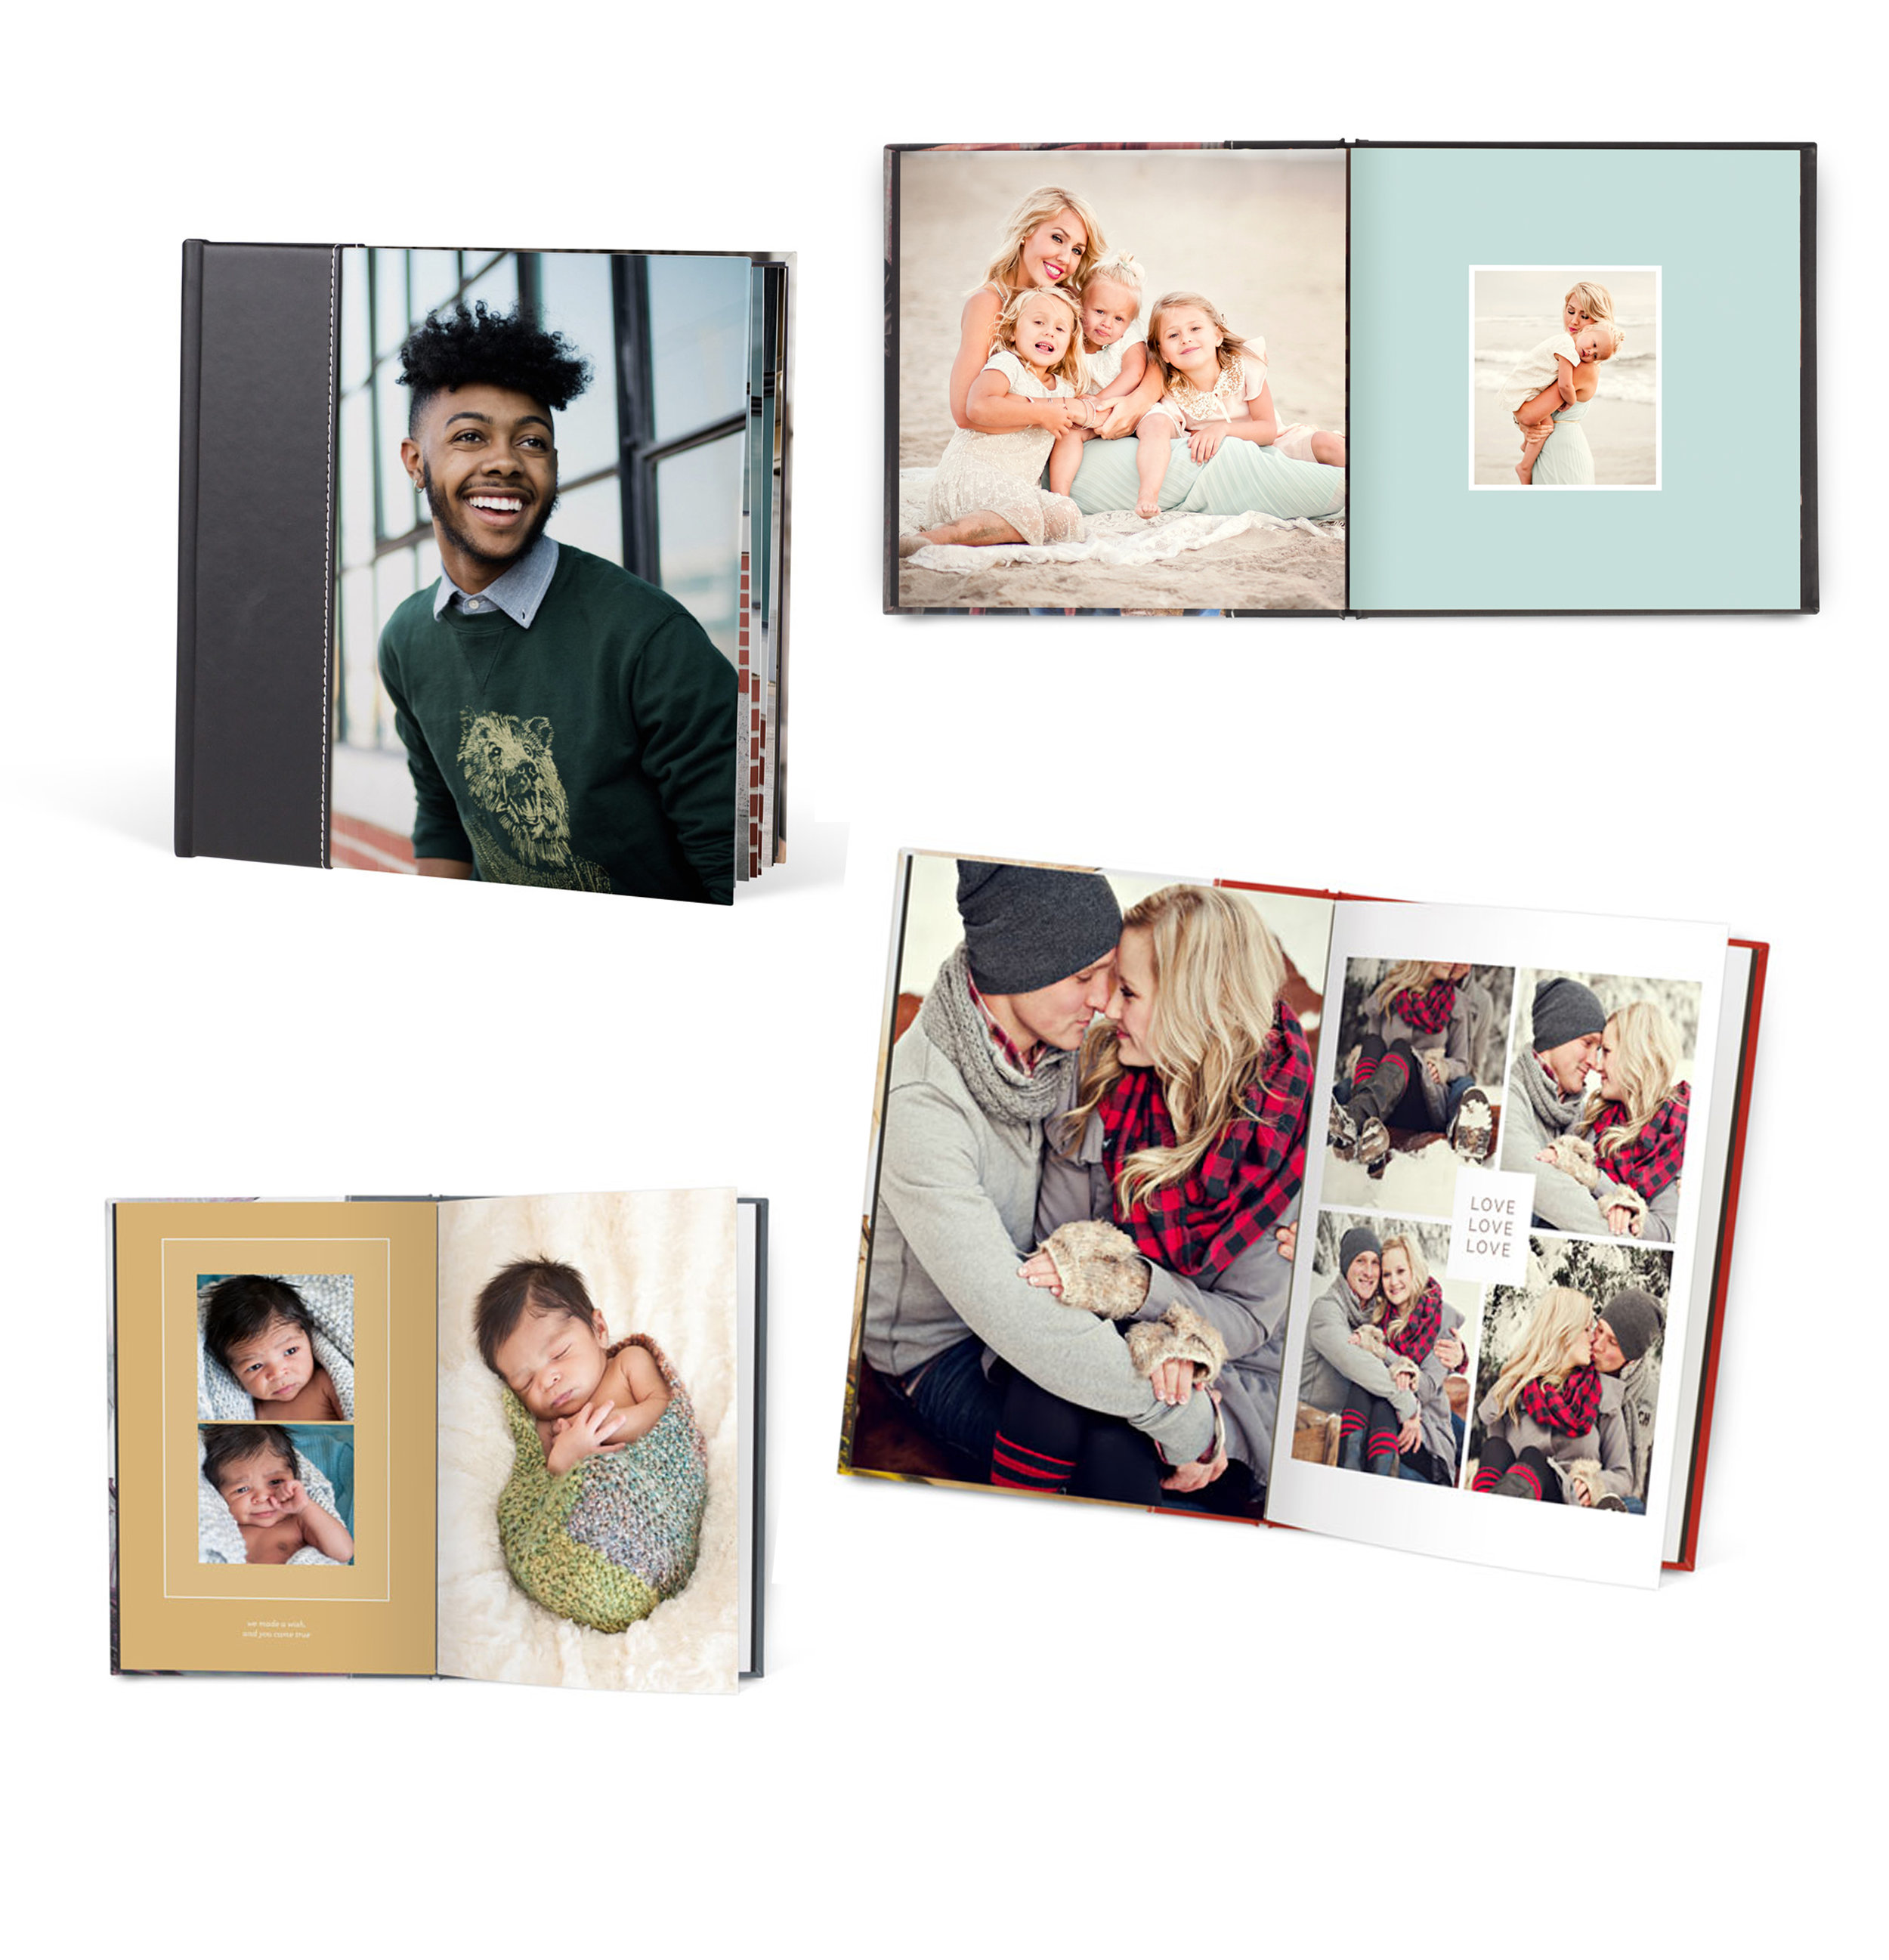 """BOOKS START AT 5""""X 5"""" and go up to 11""""X 14"""" for magazine style   Finish Options:   Lay Flat Matte  Lay Flat Satin  Magazine Paper Style   COVER OPTIONS   Metallic, Fabrics, Leathers w/wo photo"""